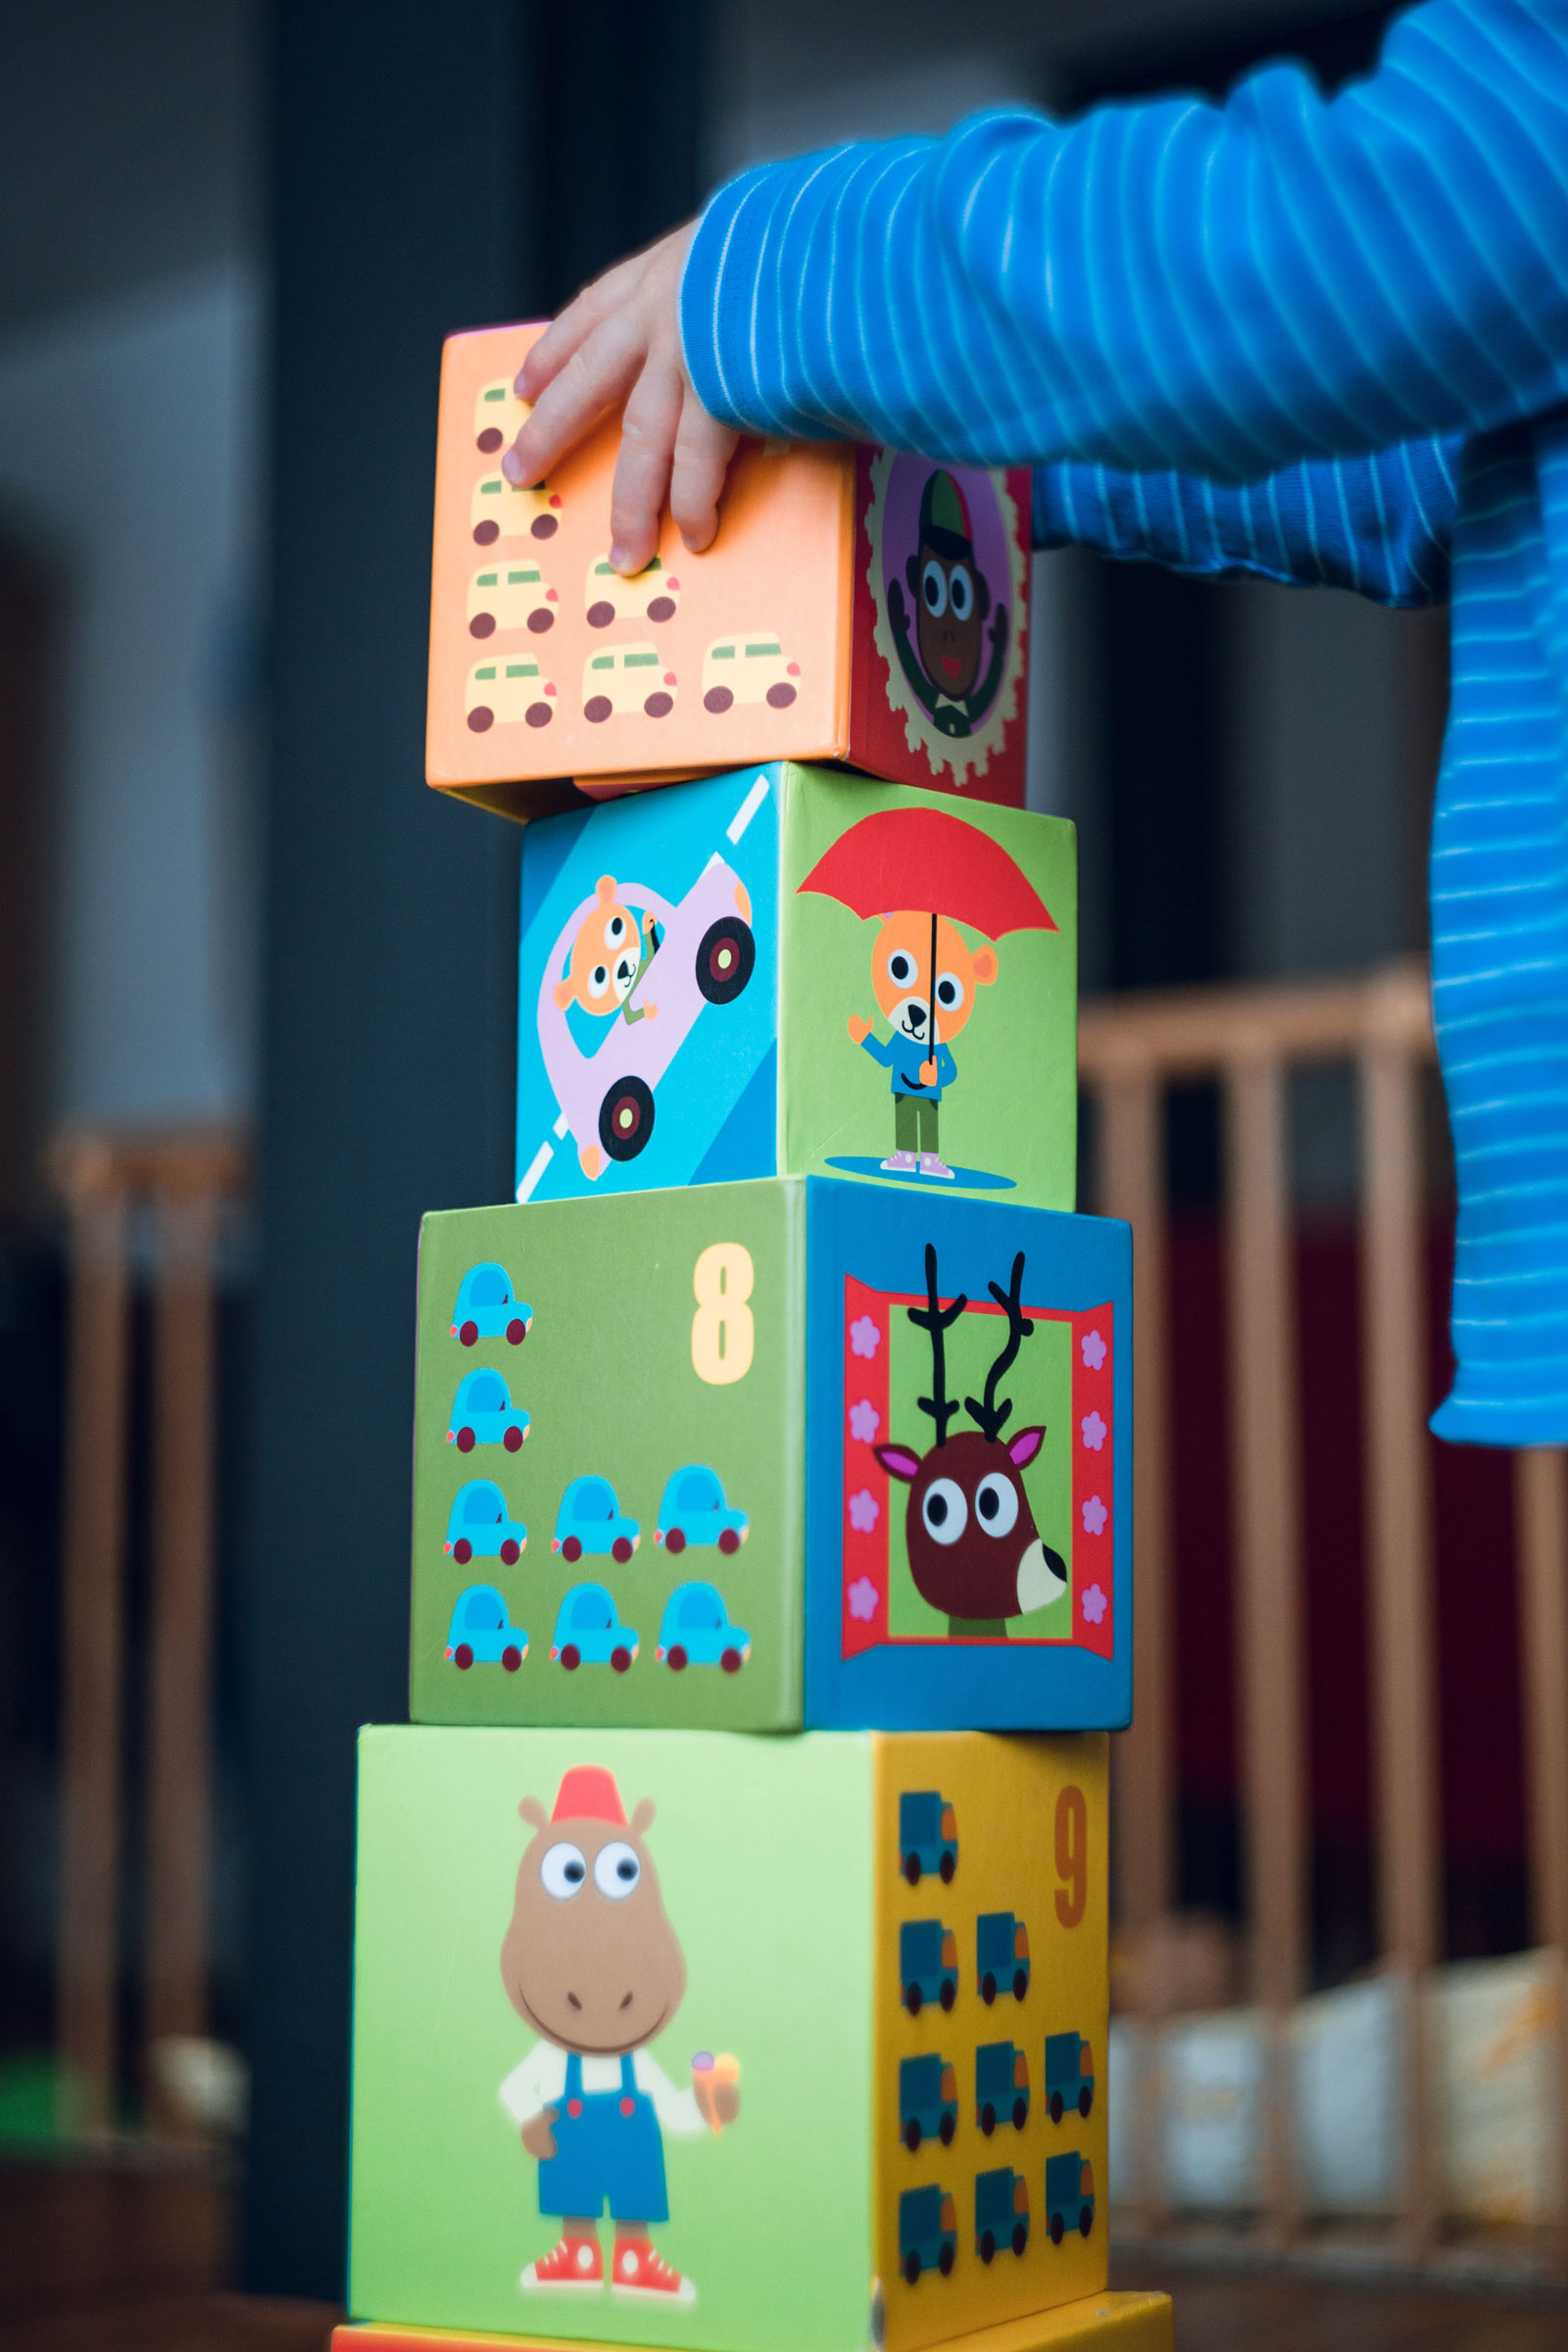 Baby Playing Blocks | 5 Tips On Finding A Babysitter You Can Trust